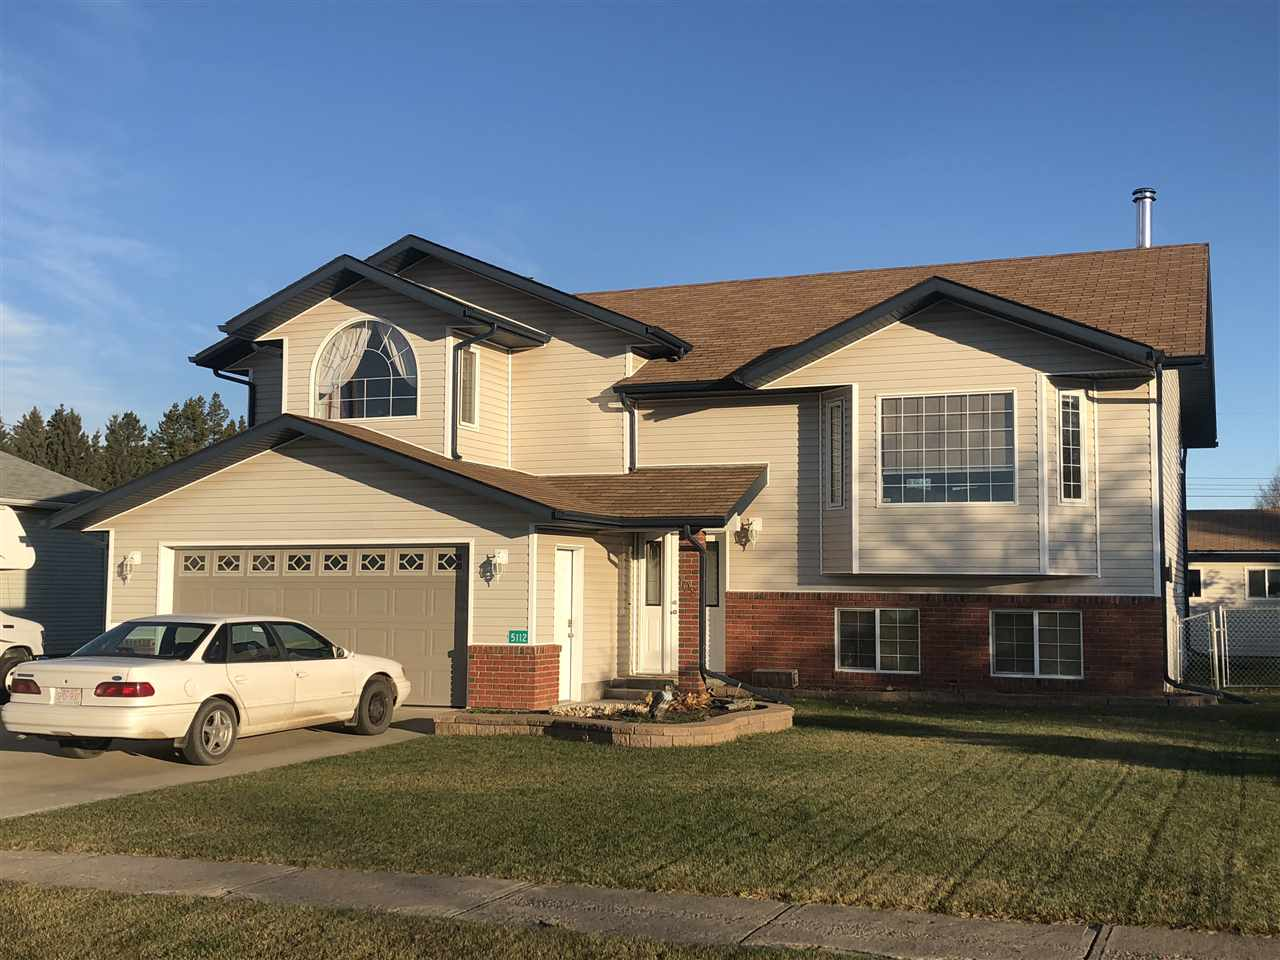 Built in 2005, this bi-level is sure to please. Located in the wonderful community of Pickardville, just 10 minutes to Westlock, 50 minutes to Edmonton. Spacious great room with oak kitchen, island, corner pantry.  Hardwood in the living room and down the hallway.  Ceramic tile in the kitchen. This home has 3+2 bedrooms & 3 bathrooms.  Vaulted ceilings with recessed lighting. Bay living room window.  Master has a 3 piece ensuite, walk-in closet, & den. The home & both garages have 2x6 exterior walls.  Large double attached garage, a double detached garage, & room for RV parking. Basement is fully finished with a large family room for entertaining. Custom white-colored woodstove with a brick surround.  Office area. 3 piece bathroom. Fenced yard.  Concrete patio deck.  Main garage has a floor drain and is finished inside.  2nd garage is finished & insulated, has power, cupboards, & 2 electric heaters. This home could use an interior paint job, so the seller is offering a $7,000 paint credit to the Buyer.